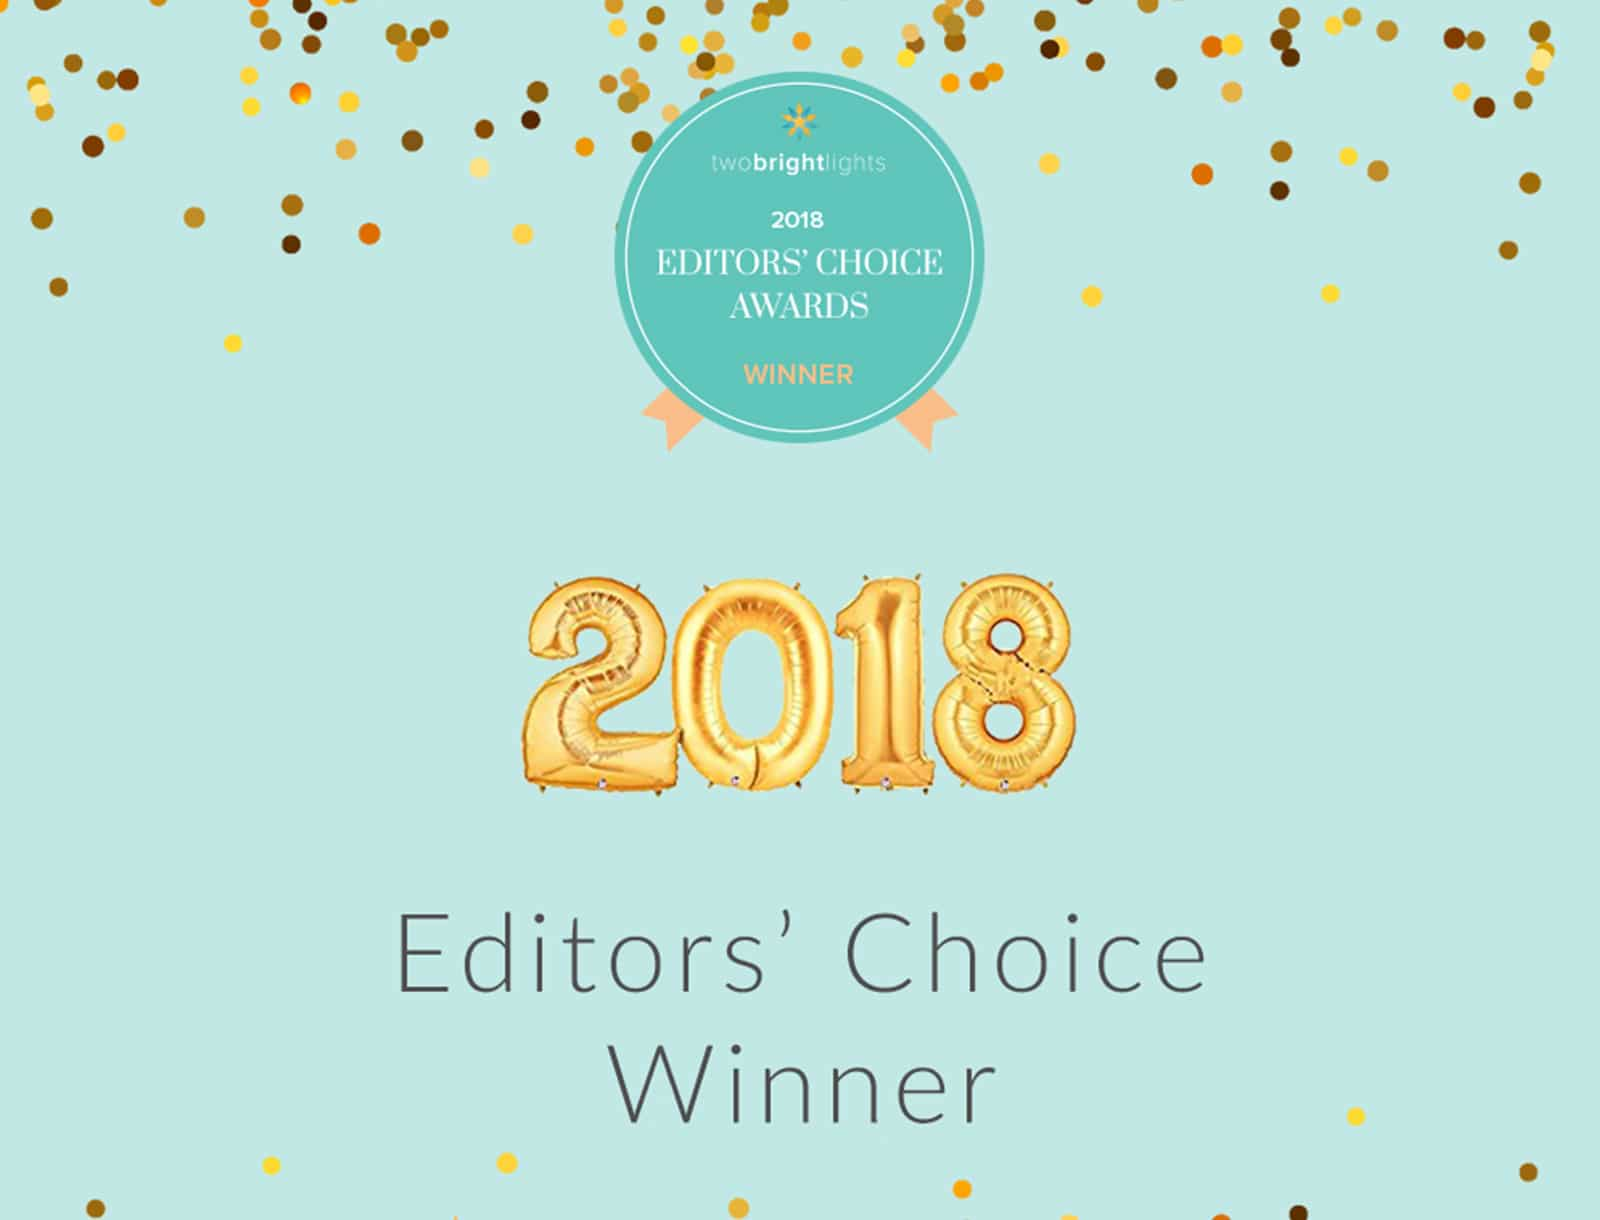 Two Bright Lights Editor's Choice Award 2018